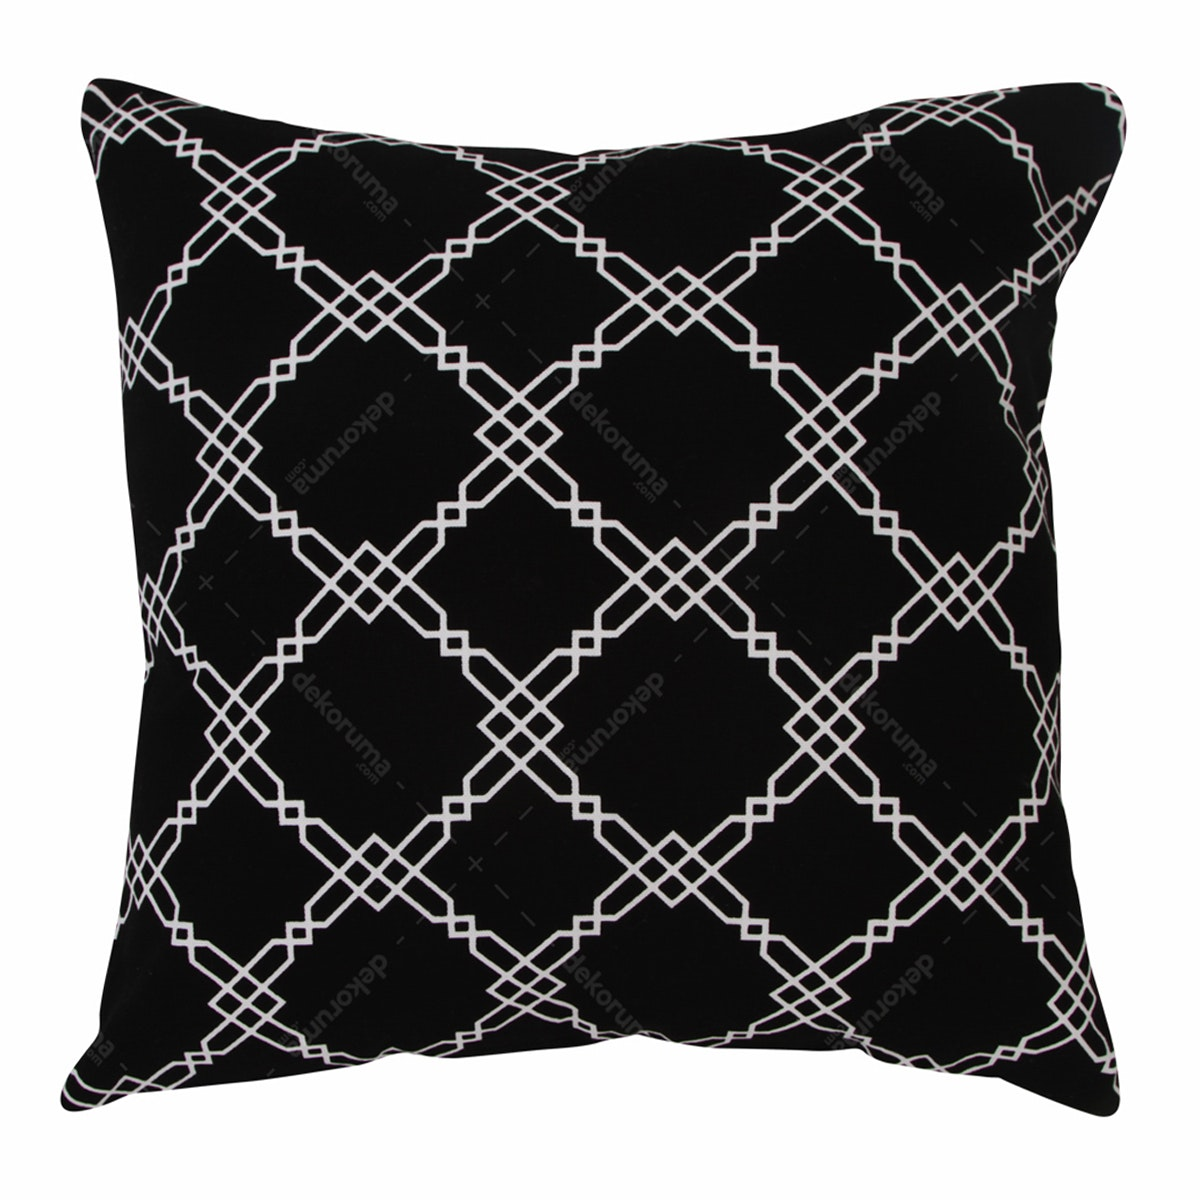 Le Noir Project Gricke Cushion Black